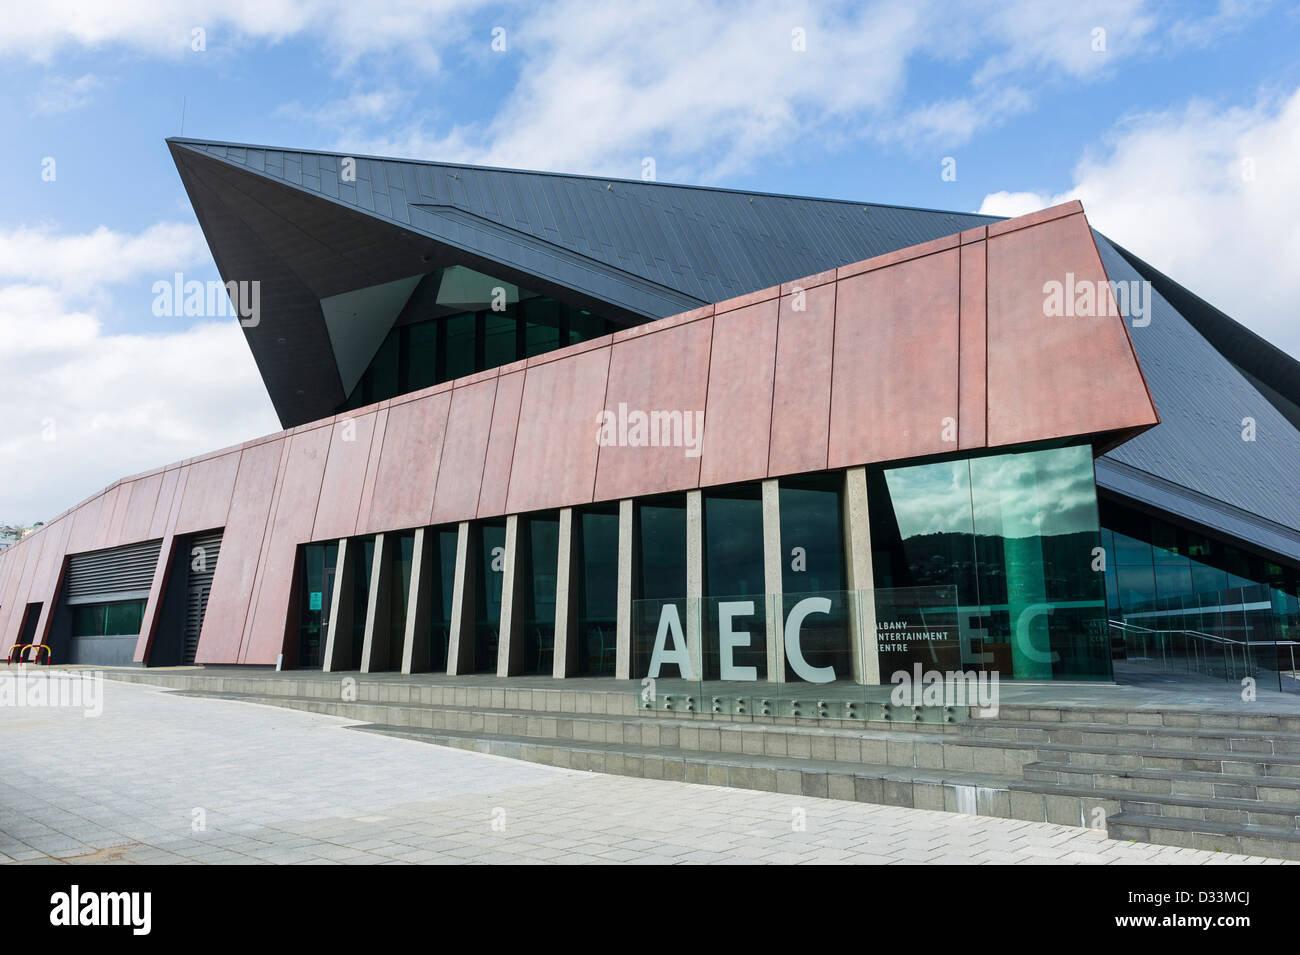 The exterior of the Albany Entertainment Centre in Albany, Western Australia - Stock Image